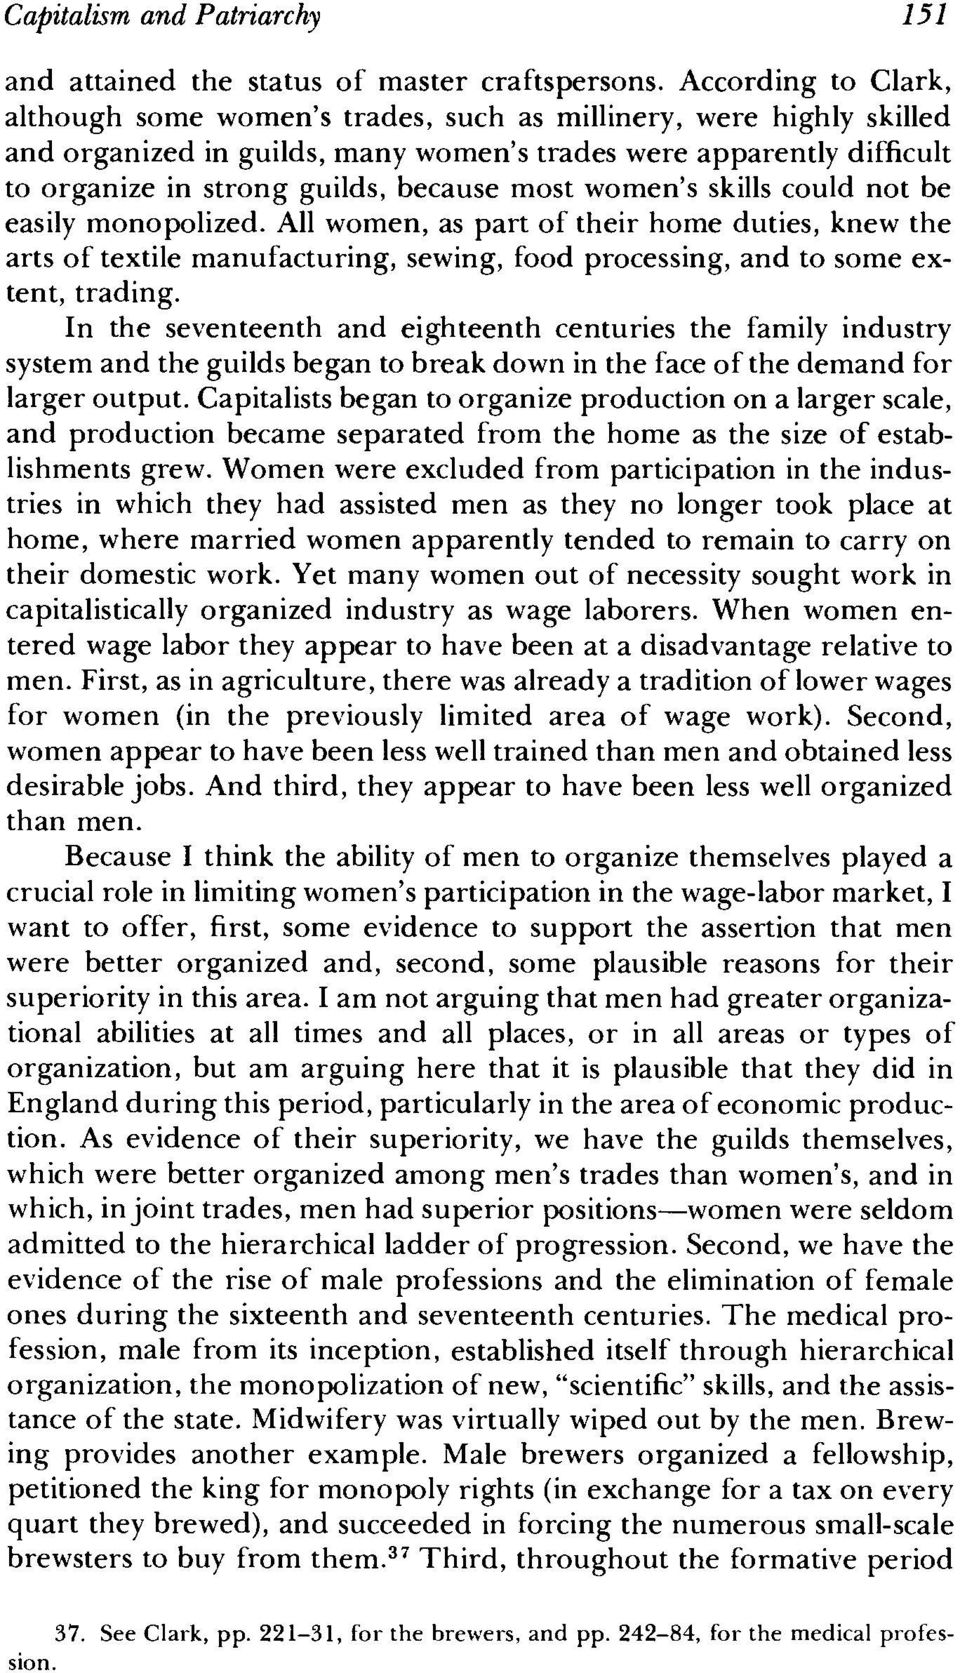 most women's skills could not be easily monopolized. All women, as part of their home duties, knew the arts of textile manufacturing, sewing, food processing, and to some extent, trading.